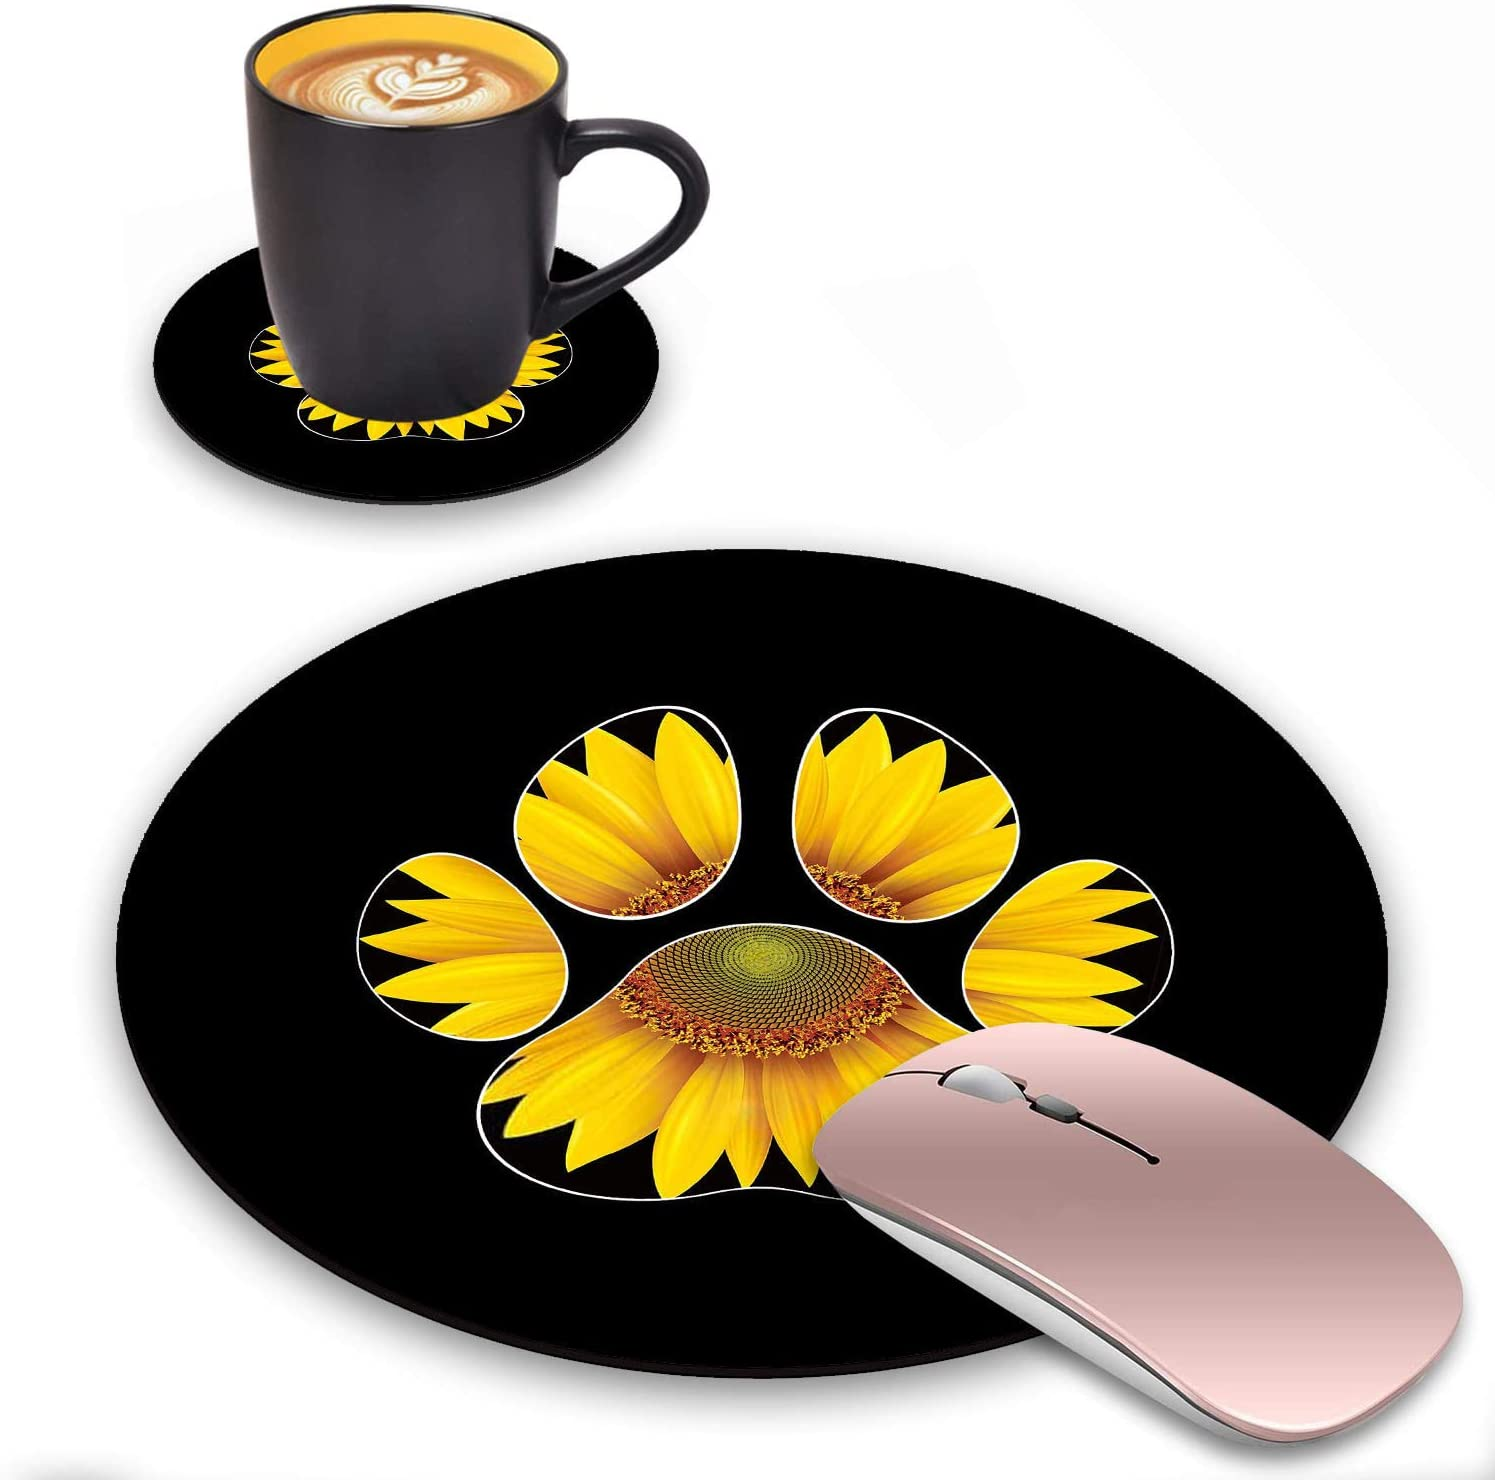 ZOXOHO Round Mouse Pad and Coasters Set, Dog Paw Sunflower Design Mouse Pad, Non-Slip Rubber Base Mouse Pads for Laptop and Computer, Cute Design Desk Accessories